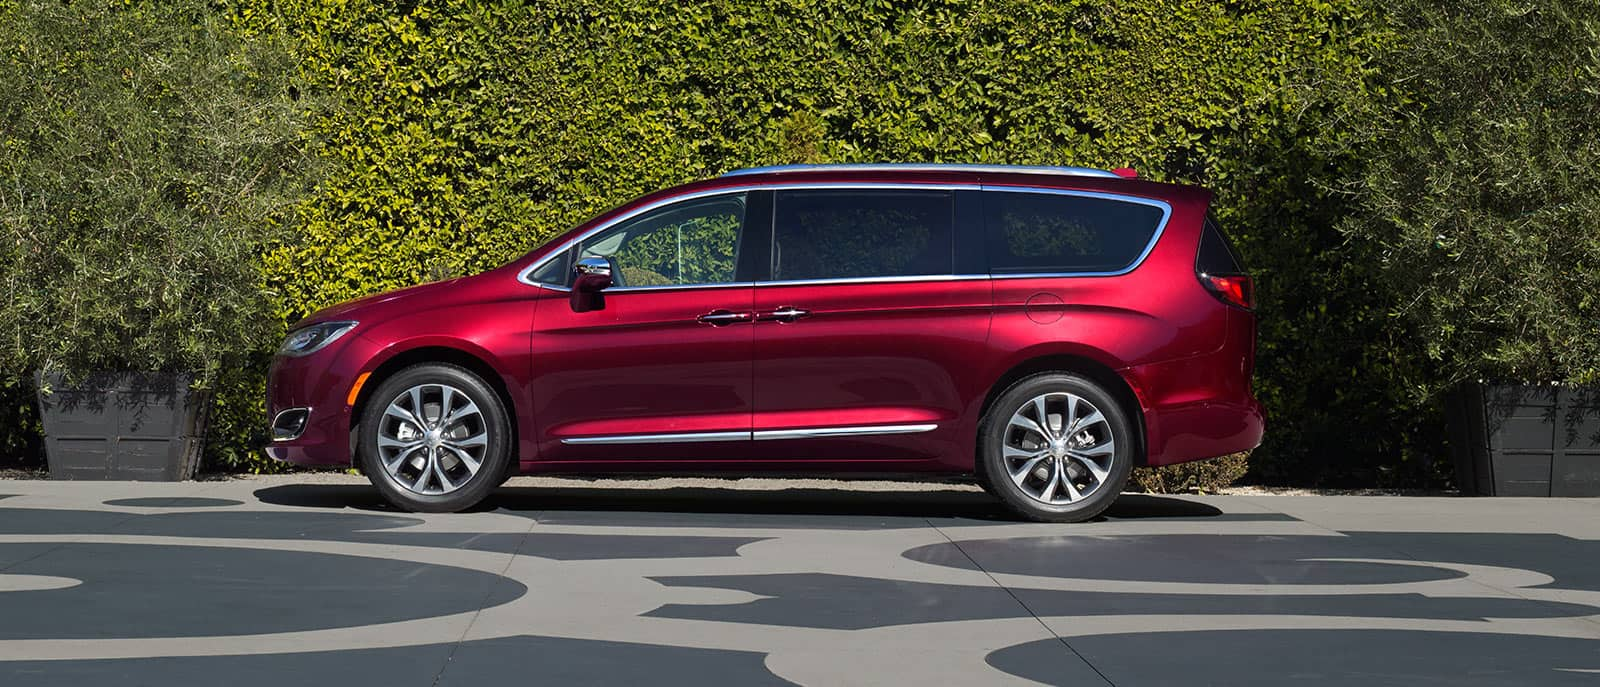 New 2017 Chrysler Pacifica For Sale Near Detroit Mi Dearborn Mi Lease Or Buy A New 2017